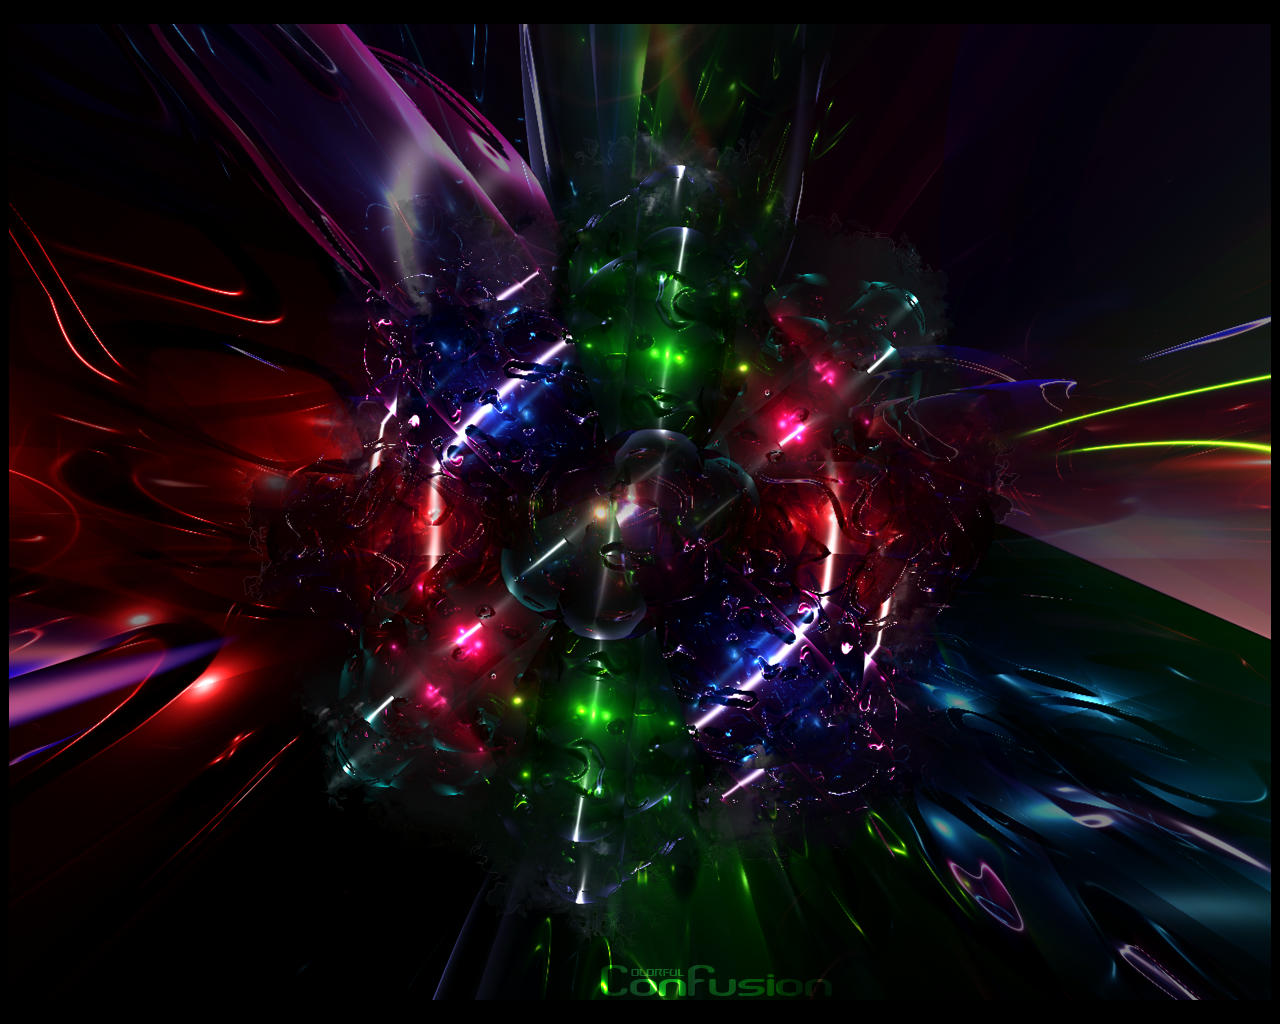 :Abstract: Colorful-Confusion by david-designs on DeviantArt